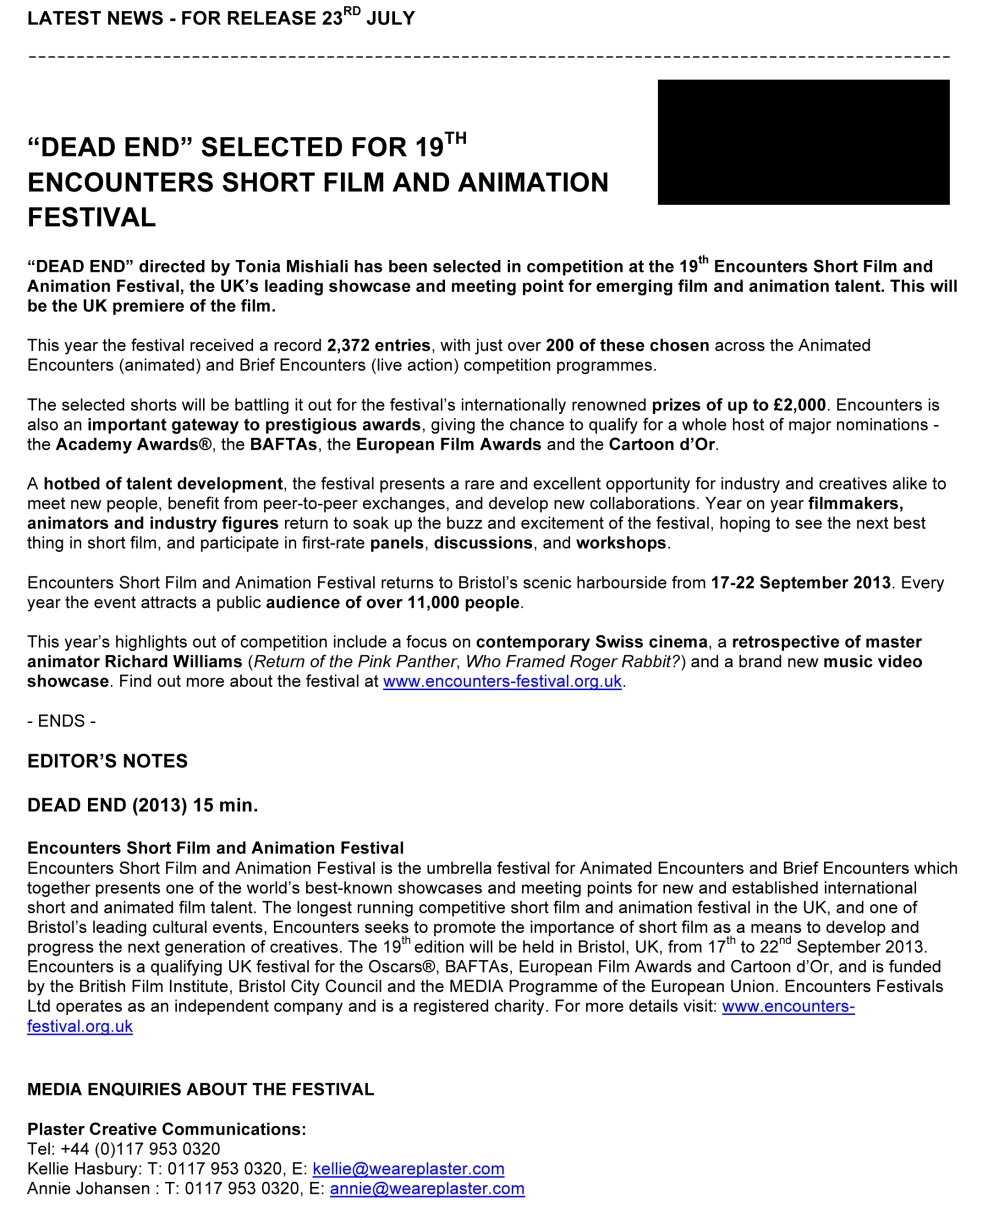 Microsoft Word - FILMMAKER_PRESS_DEAD END.doc